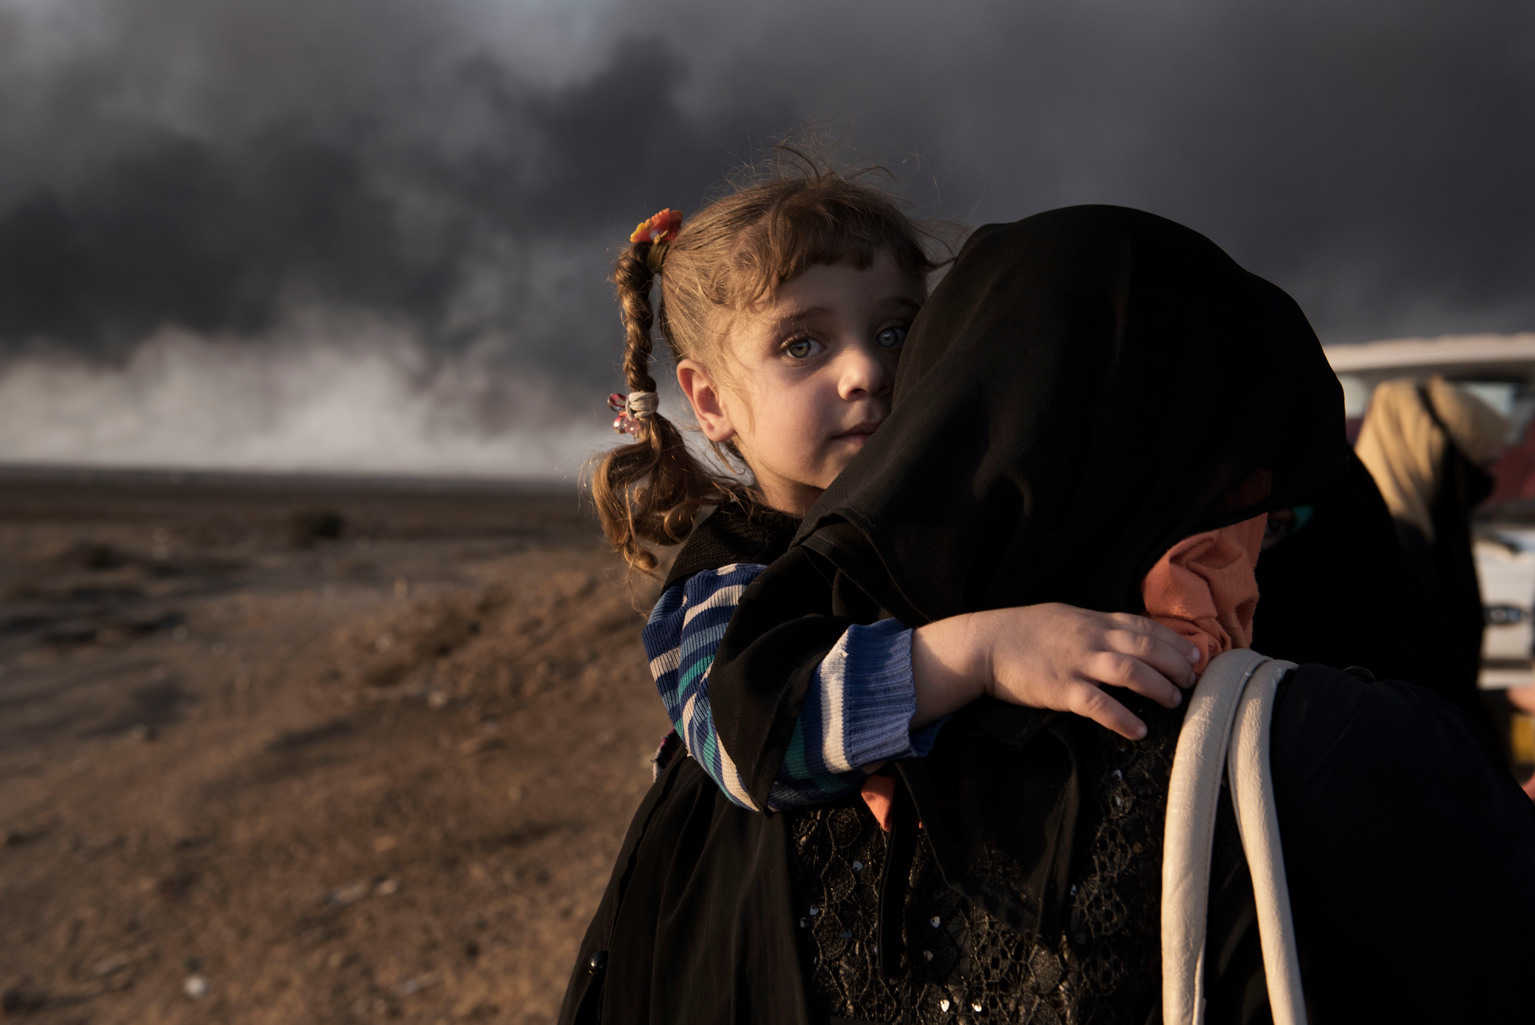 UNICEF PHOTO: A newly displaced woman carries a child at a check point in Qayyara, south of Mosul, IRAQ.